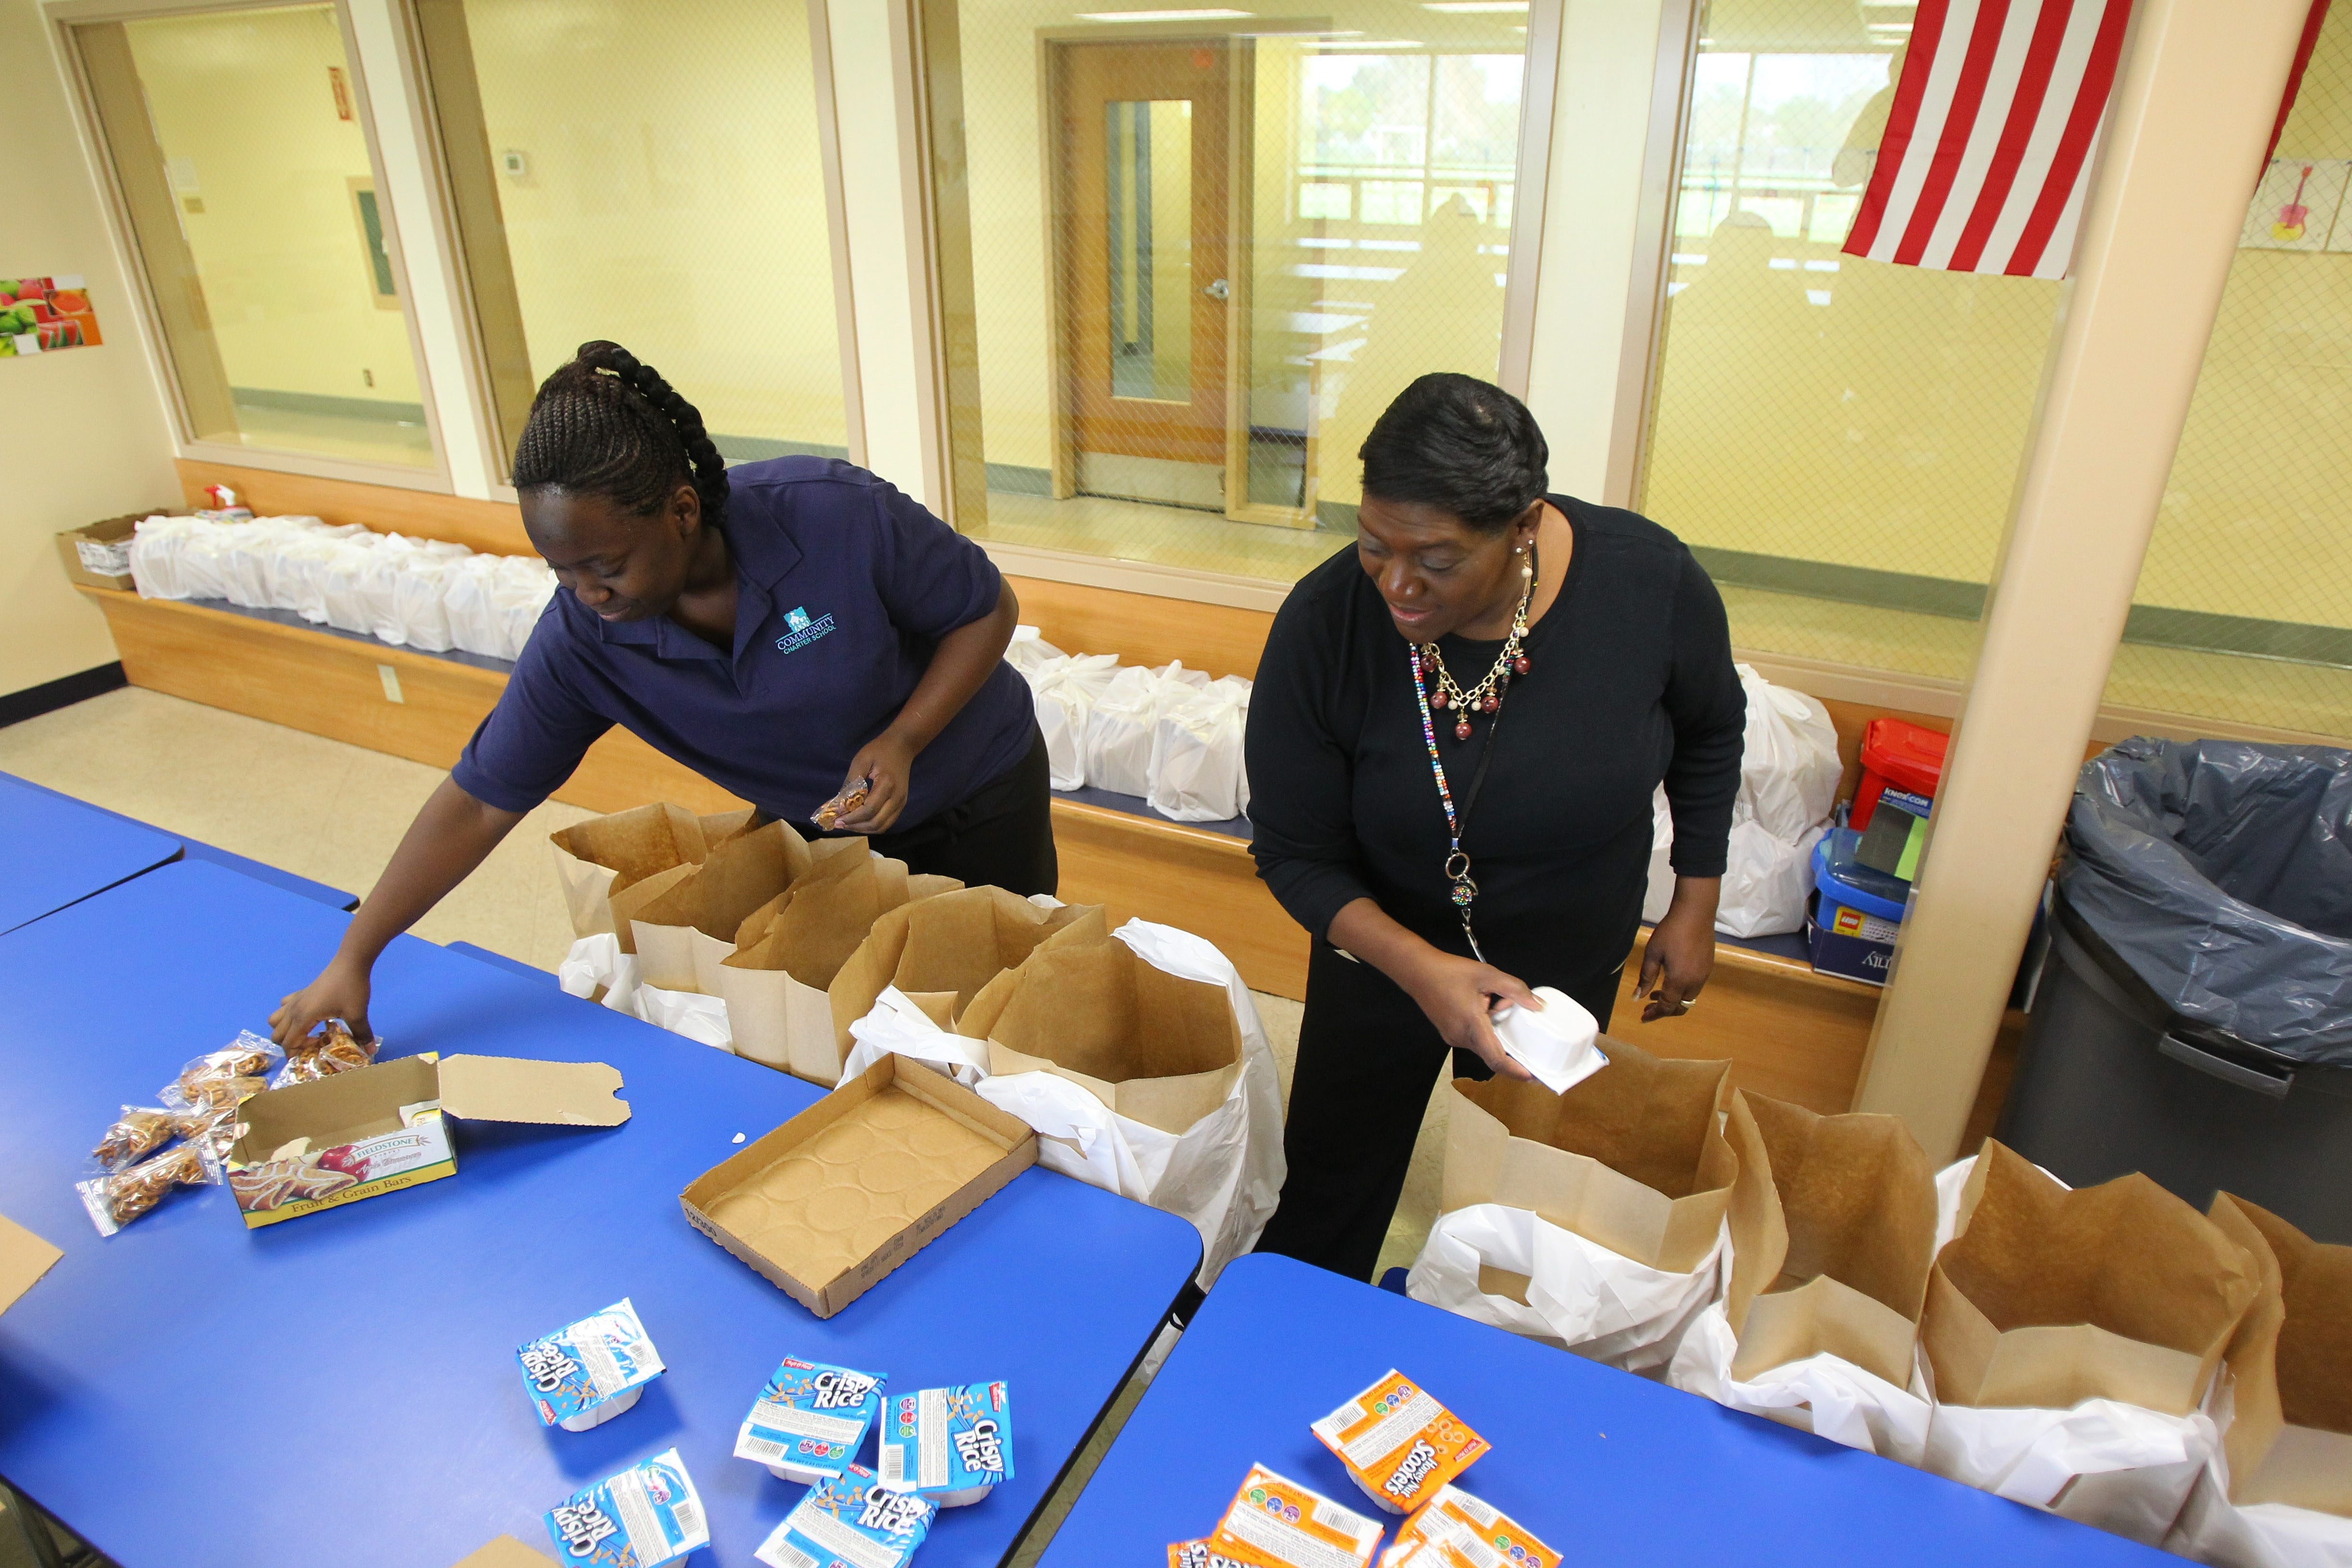 Community Charter School head cook Teri Gamble, right, and cafeteria staffer Joniesha Eldridge fill bags of food for needy children at the school to take home for the weekend. They were in the school cafeteria in Buffalo on Thursday.